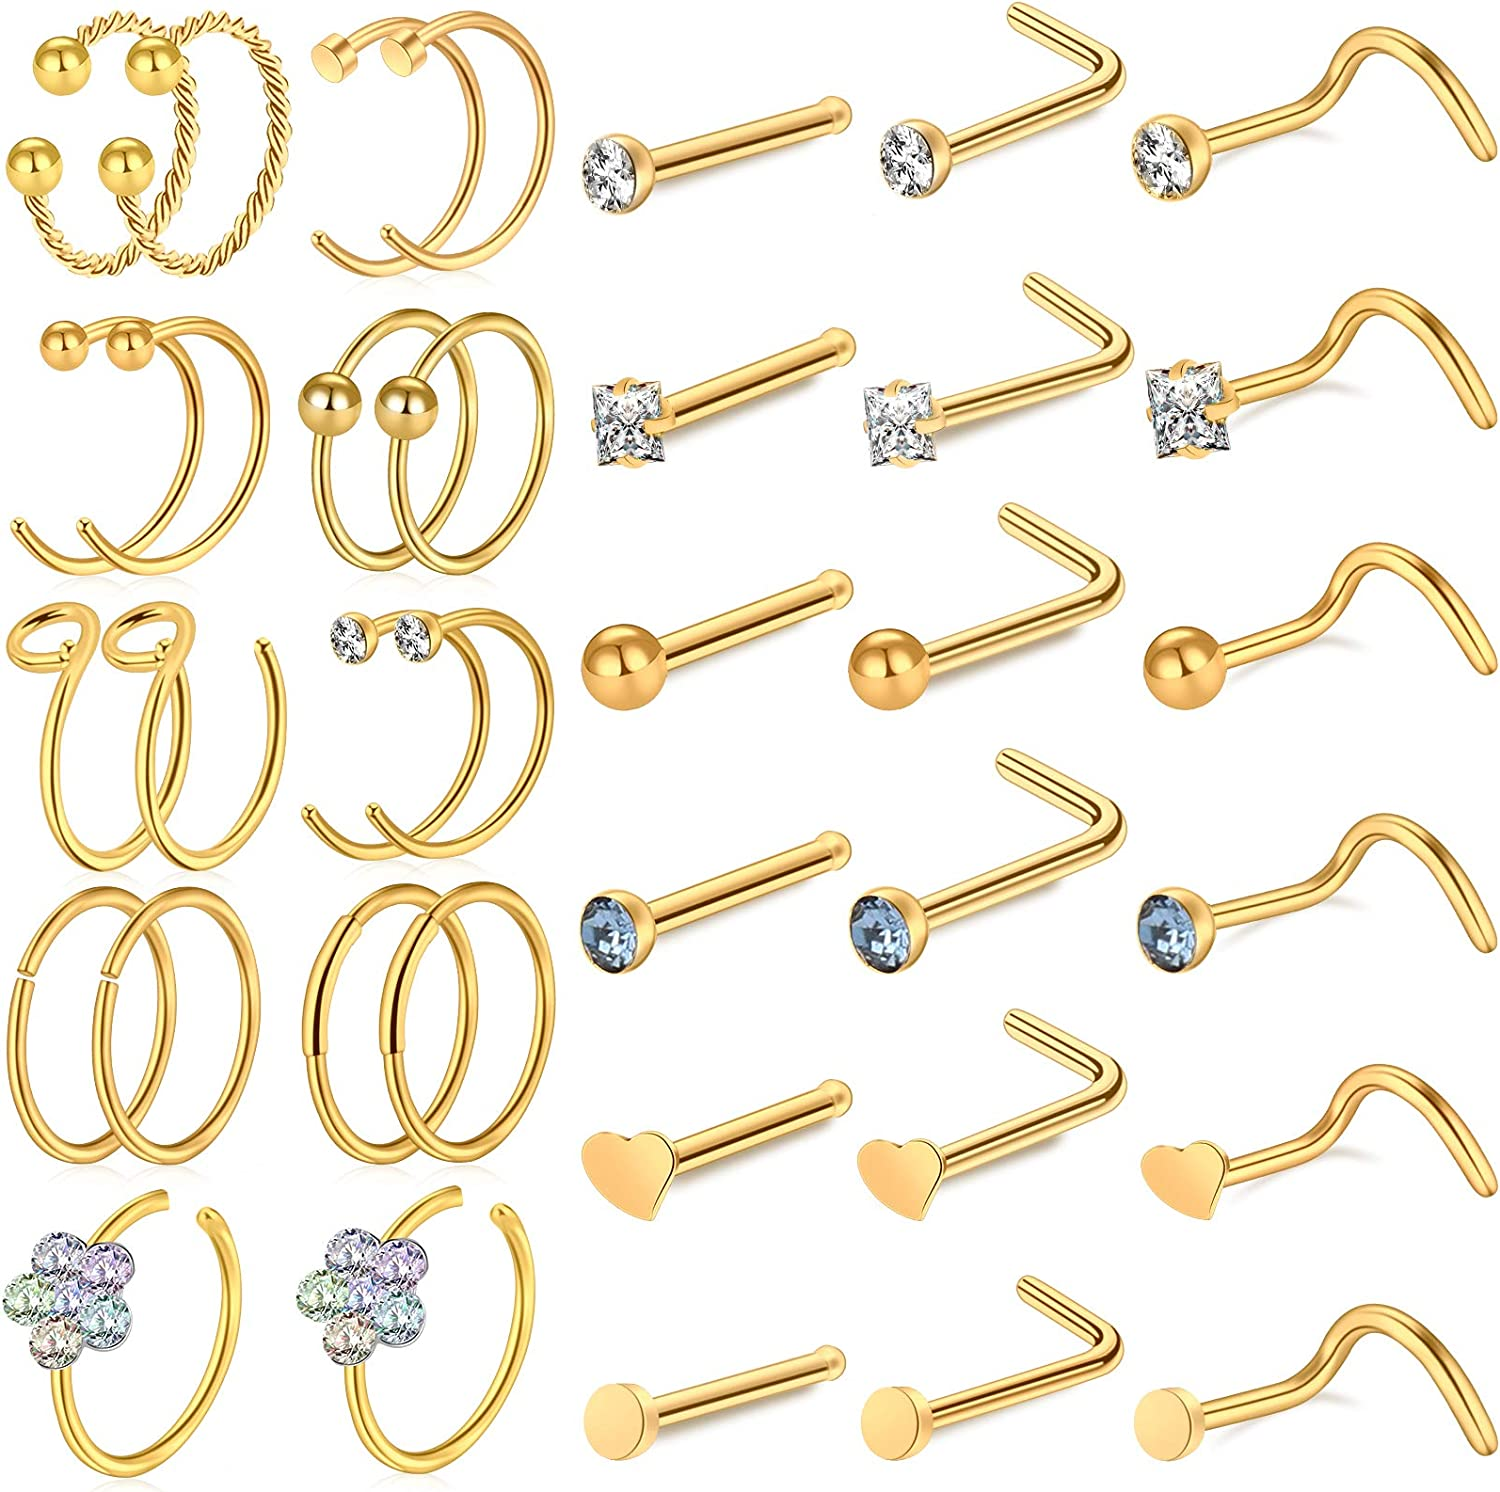 ONESING 36 Pcs Nose Rings for Women Nose Studs Nose Rings Hoop 20G Piercings Jewelry Screw Stainless Steel for Women Men